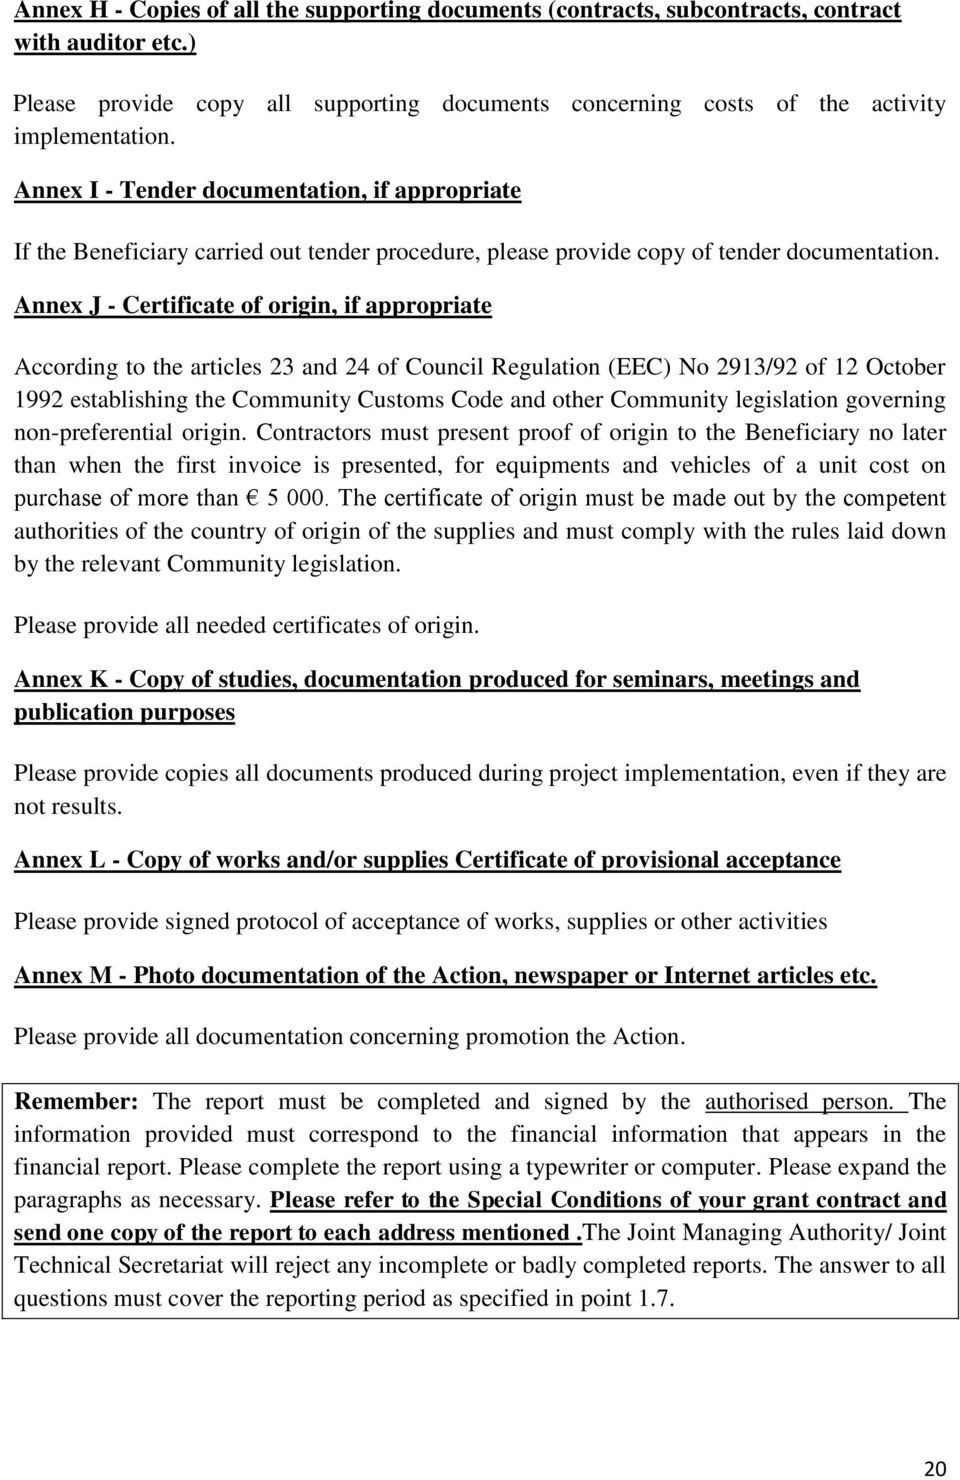 Annex J - Certificate of origin, if appropriate According to the articles 23 and 24 of Council Regulation (EEC) No 2913/92 of 12 October 1992 establishing the Community Customs Code and other